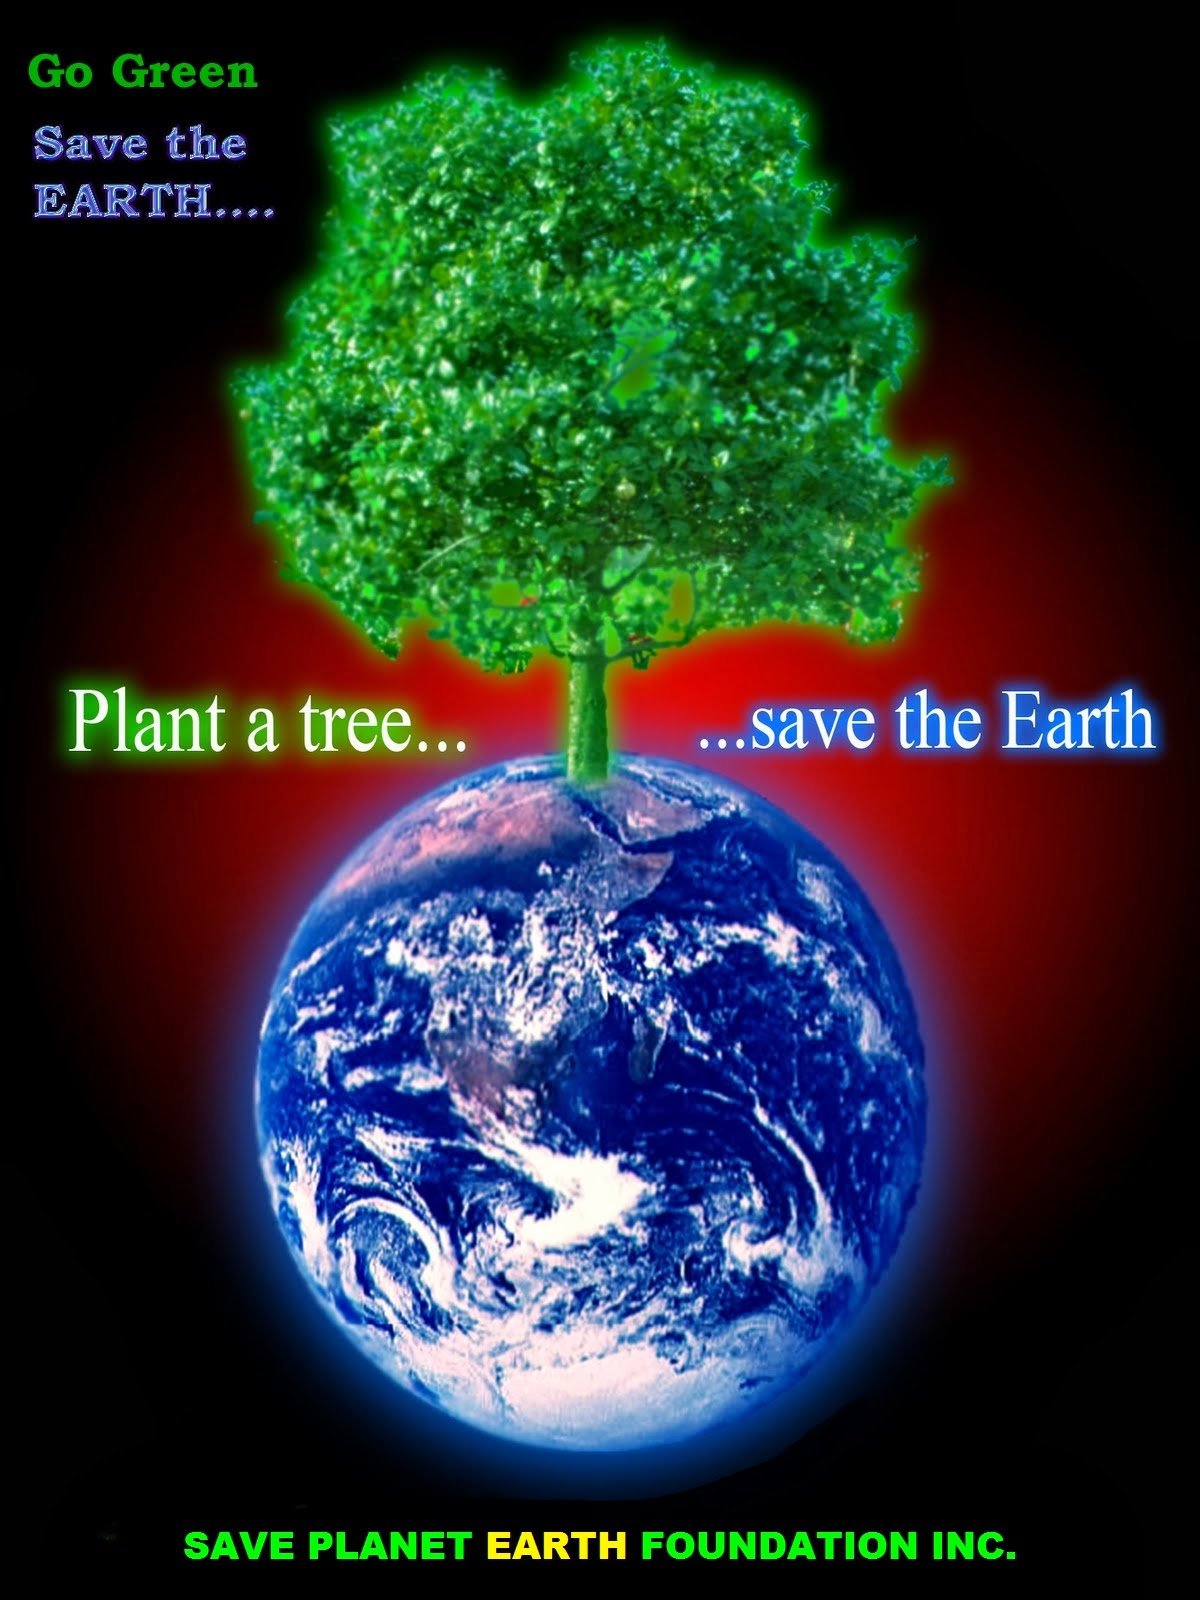 Save Planet Earth Foundation Inc